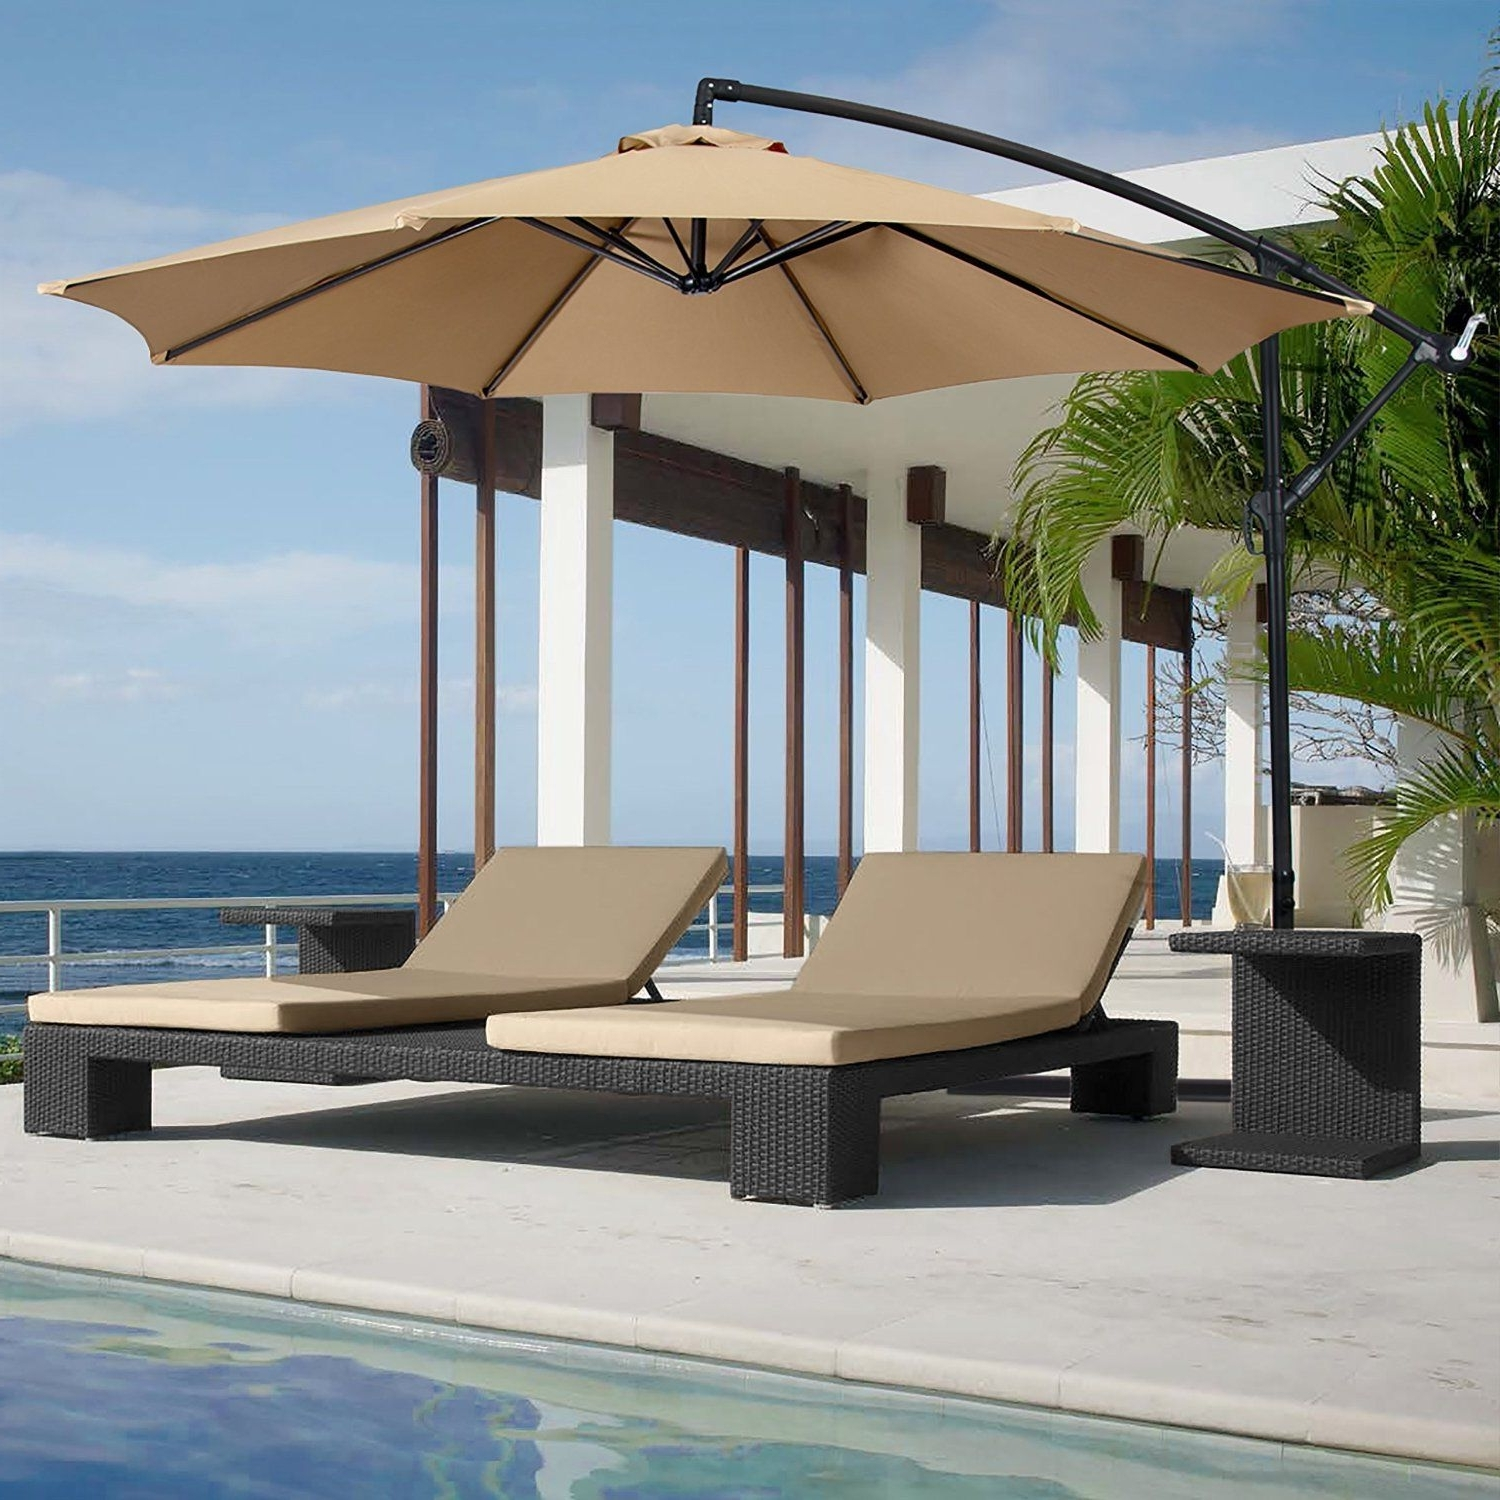 Amazon Patio Umbrellas Within Widely Used Amazon : Best Choice Products® Patio Umbrella Offset 10' Hanging (View 8 of 20)